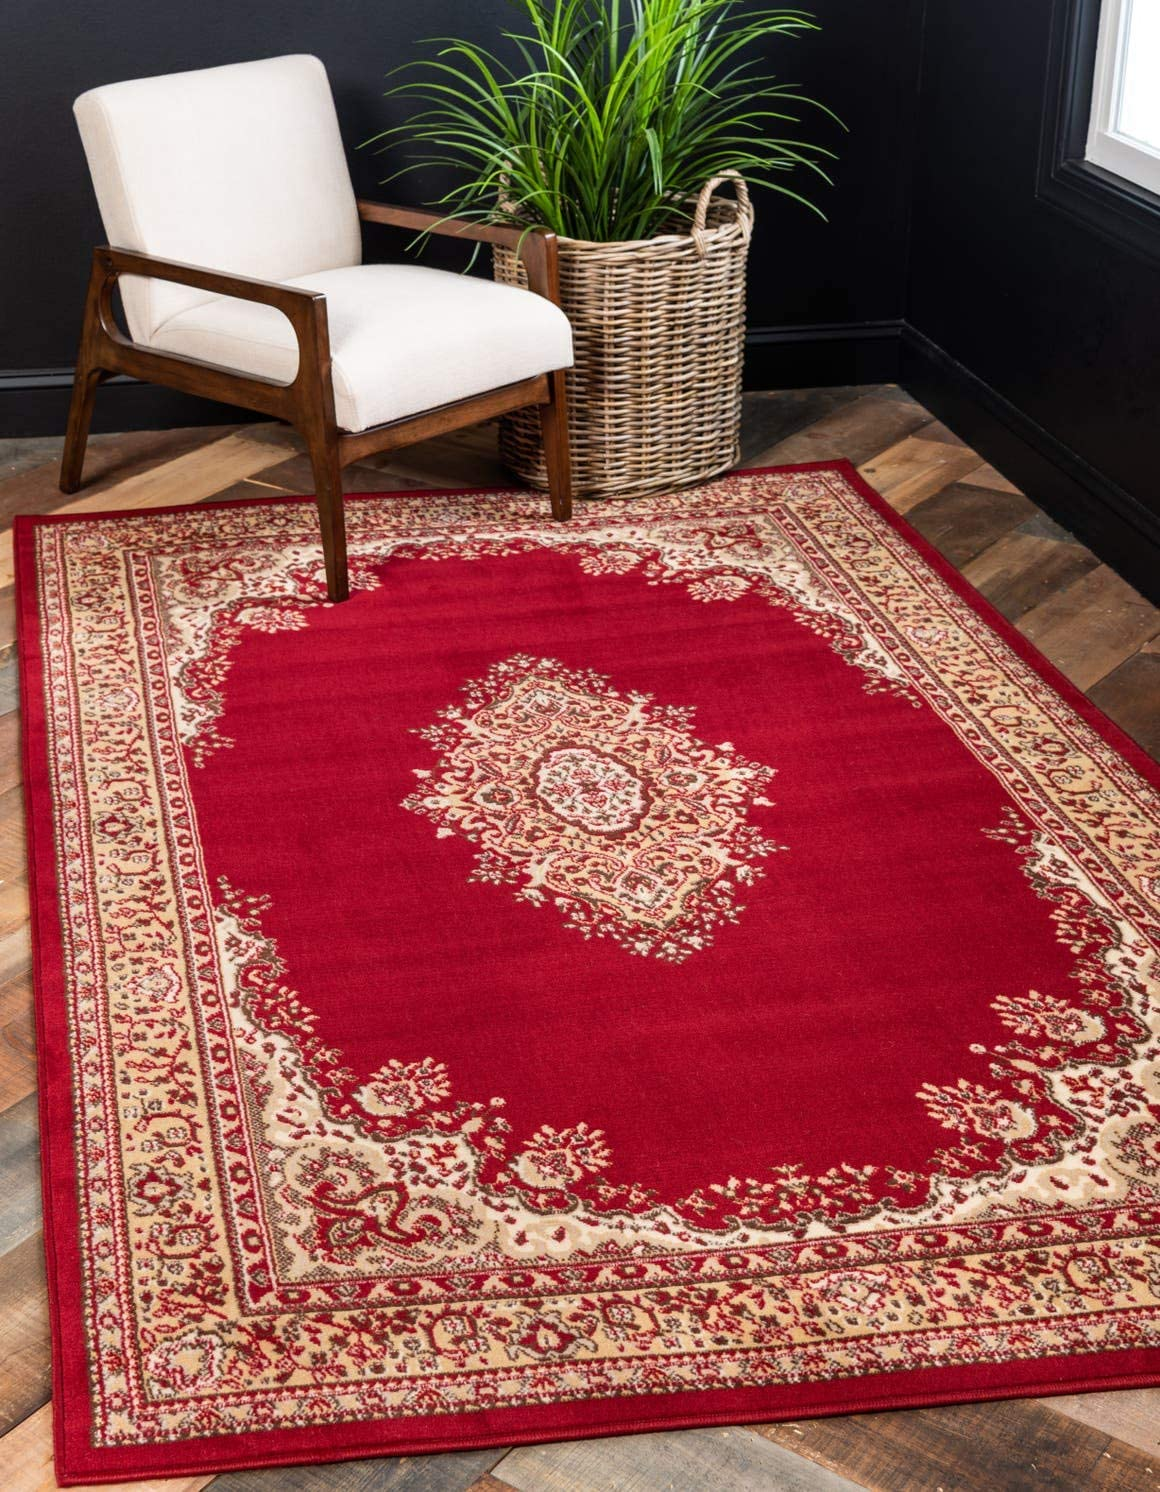 Unique Loom Reza Collection Classic Traditional Burgundy Area Rug 8 0 x 10 0